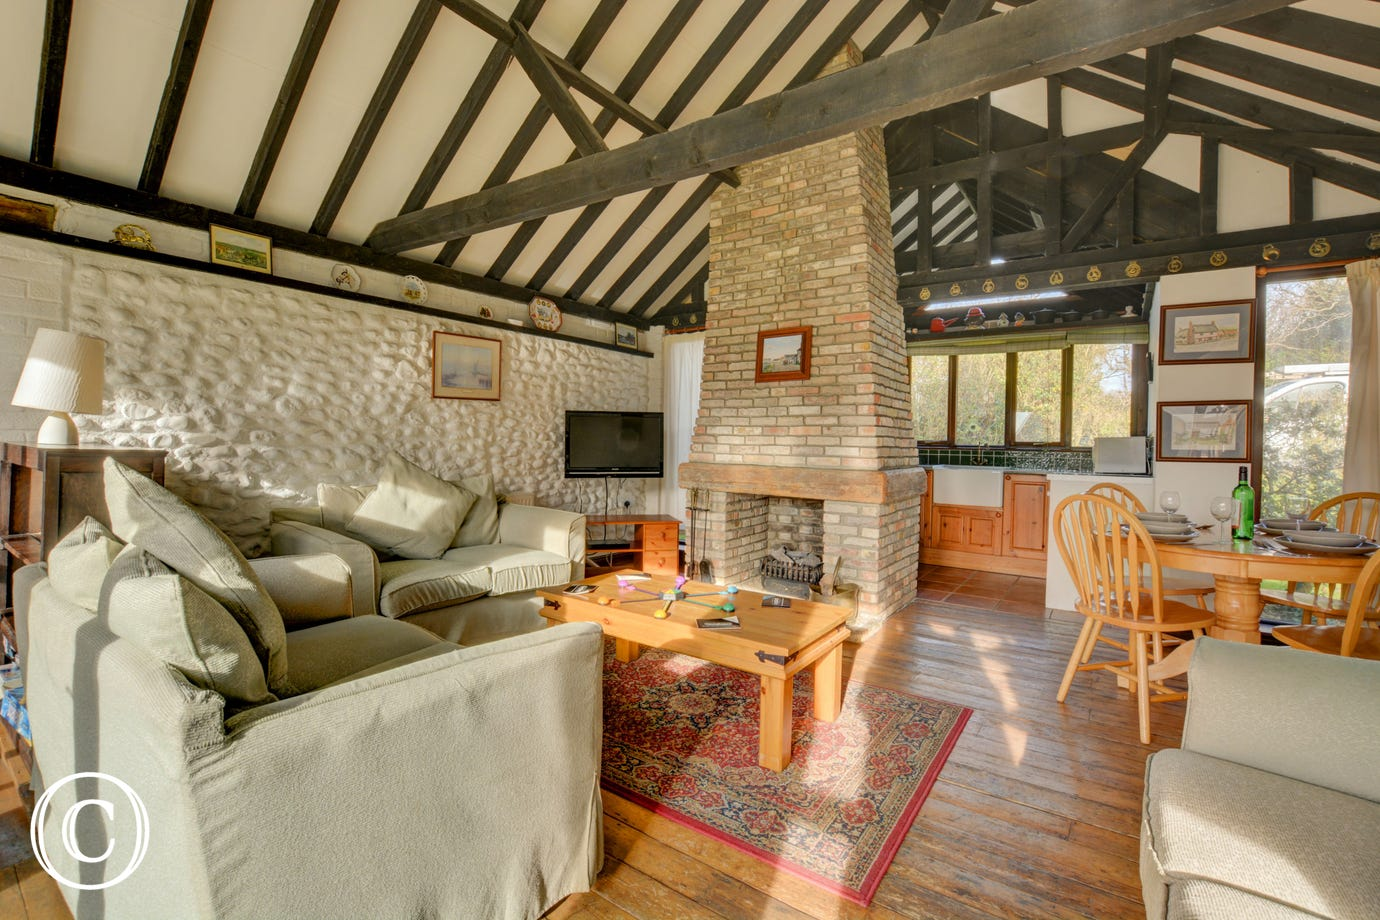 The spacious sitting/dining area has comfortable seating, and a Tudor brick fireplace with a gas log fire for cosy evenings